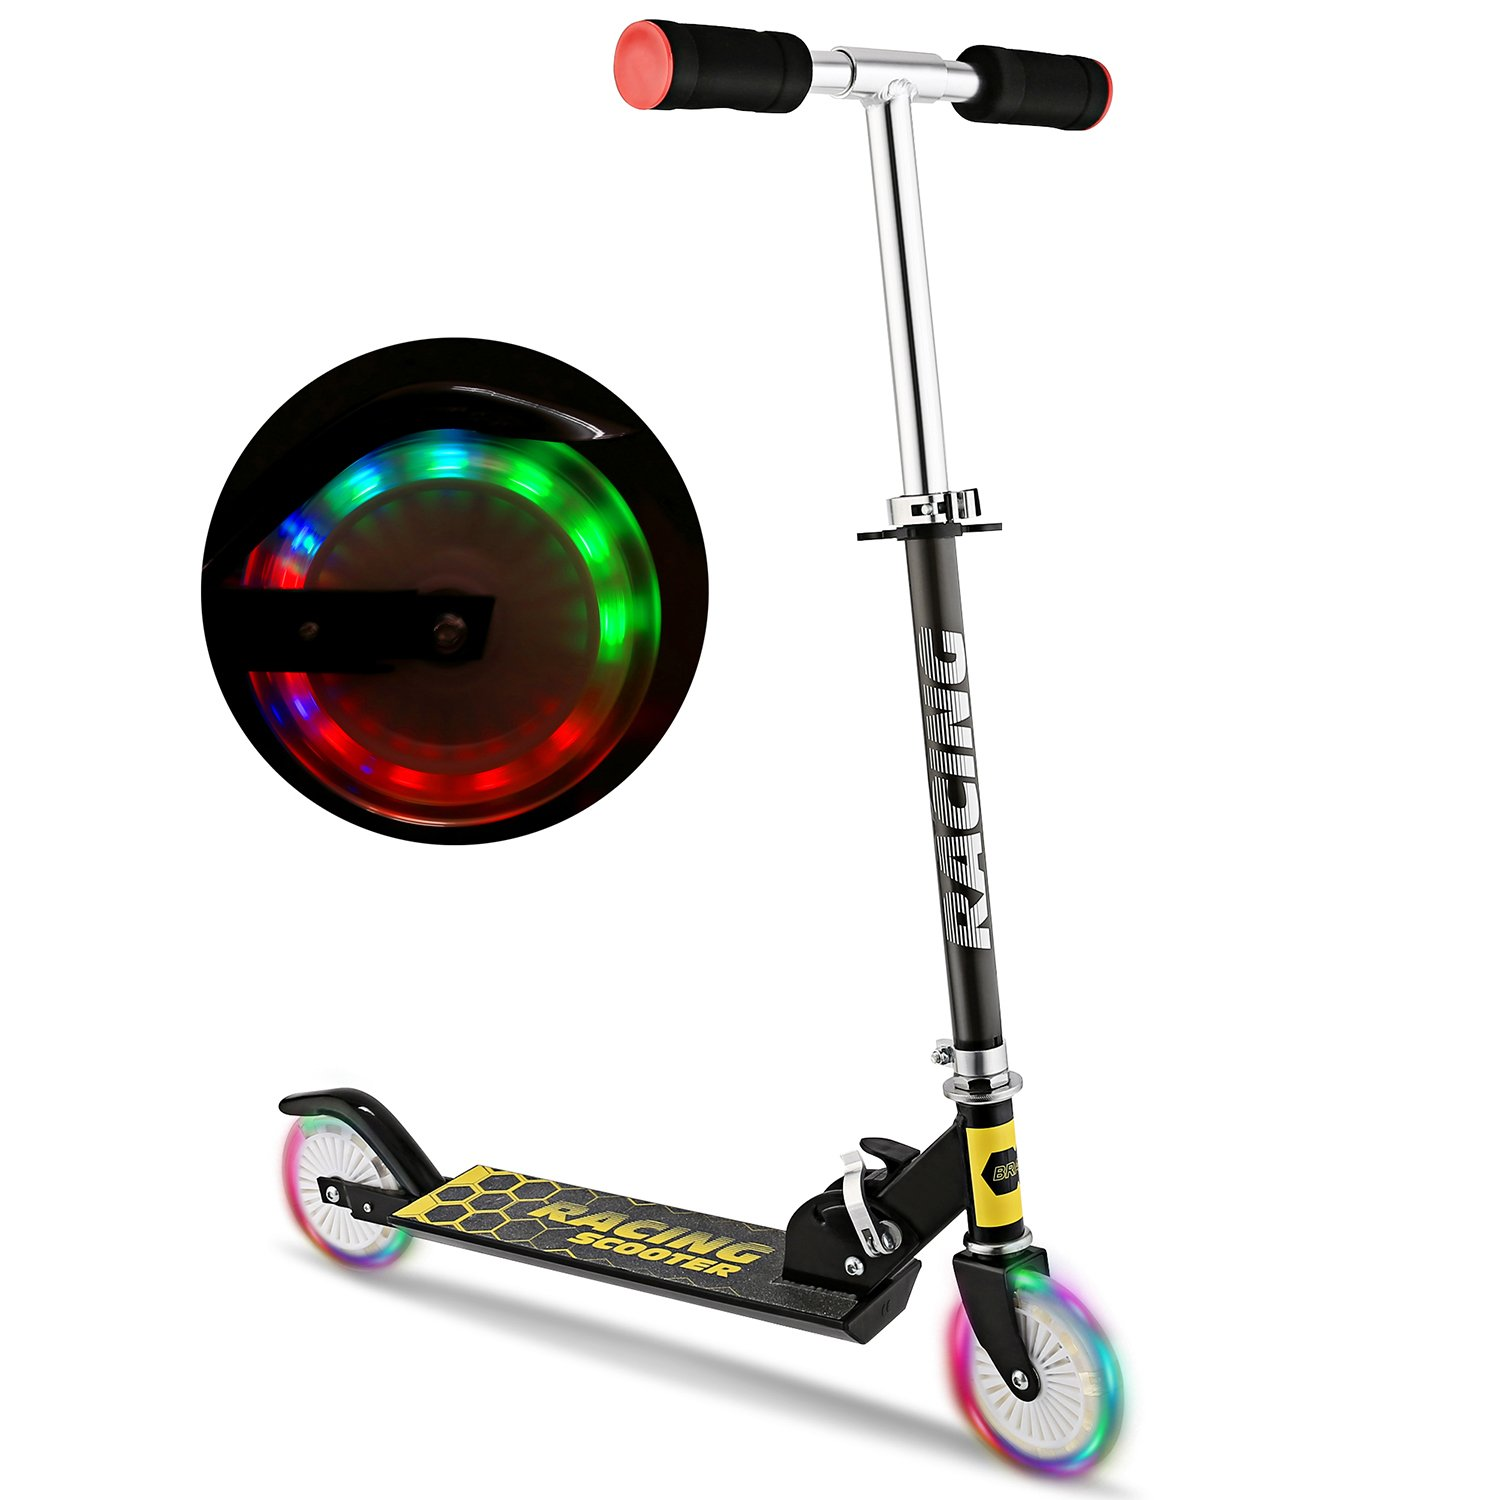 WeSkate Scooter for Kids with LED Light Up Wheels, Adjustable Height Kick Scooters for Boys and Girls Ages 3-12, Rear…